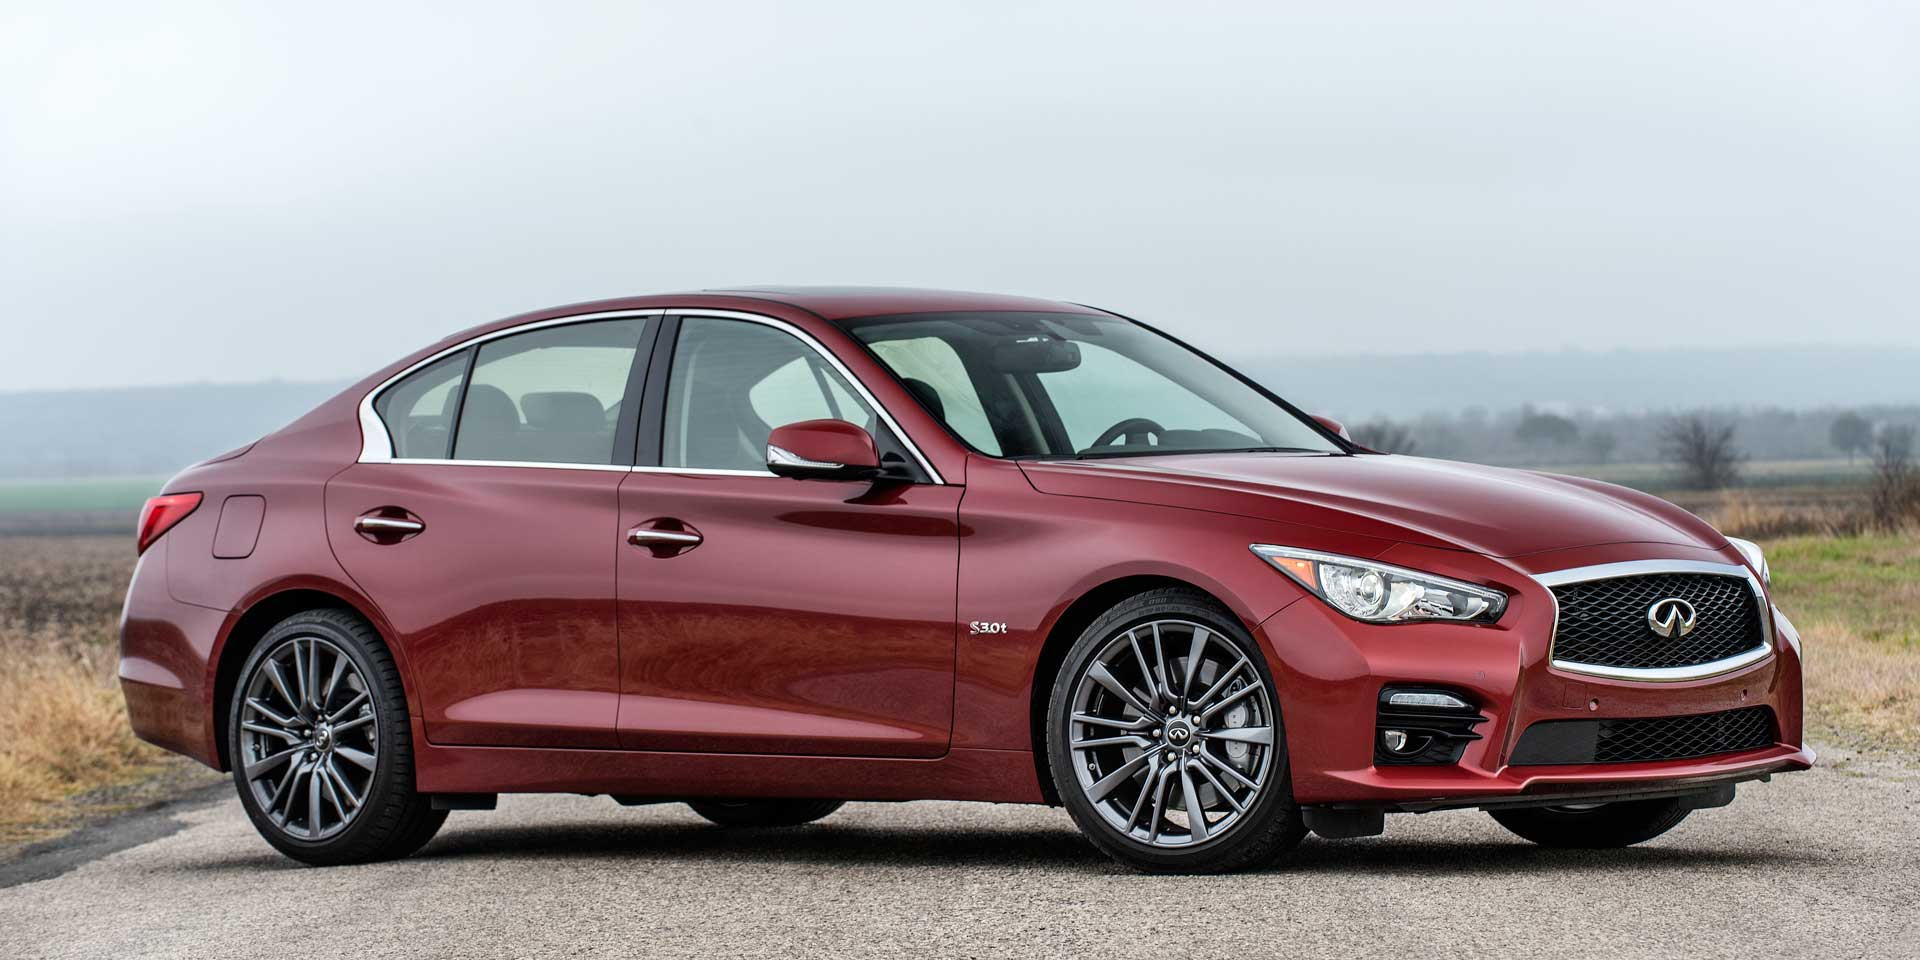 Used cars for sale new cars for sale car dealers cars chicago 2017 infiniti q50 the 2017 infiniti q50 is a five seat sedan that competes with the audi a4 bmw 3 series and cadillac ats the q50 receives design and sciox Image collections